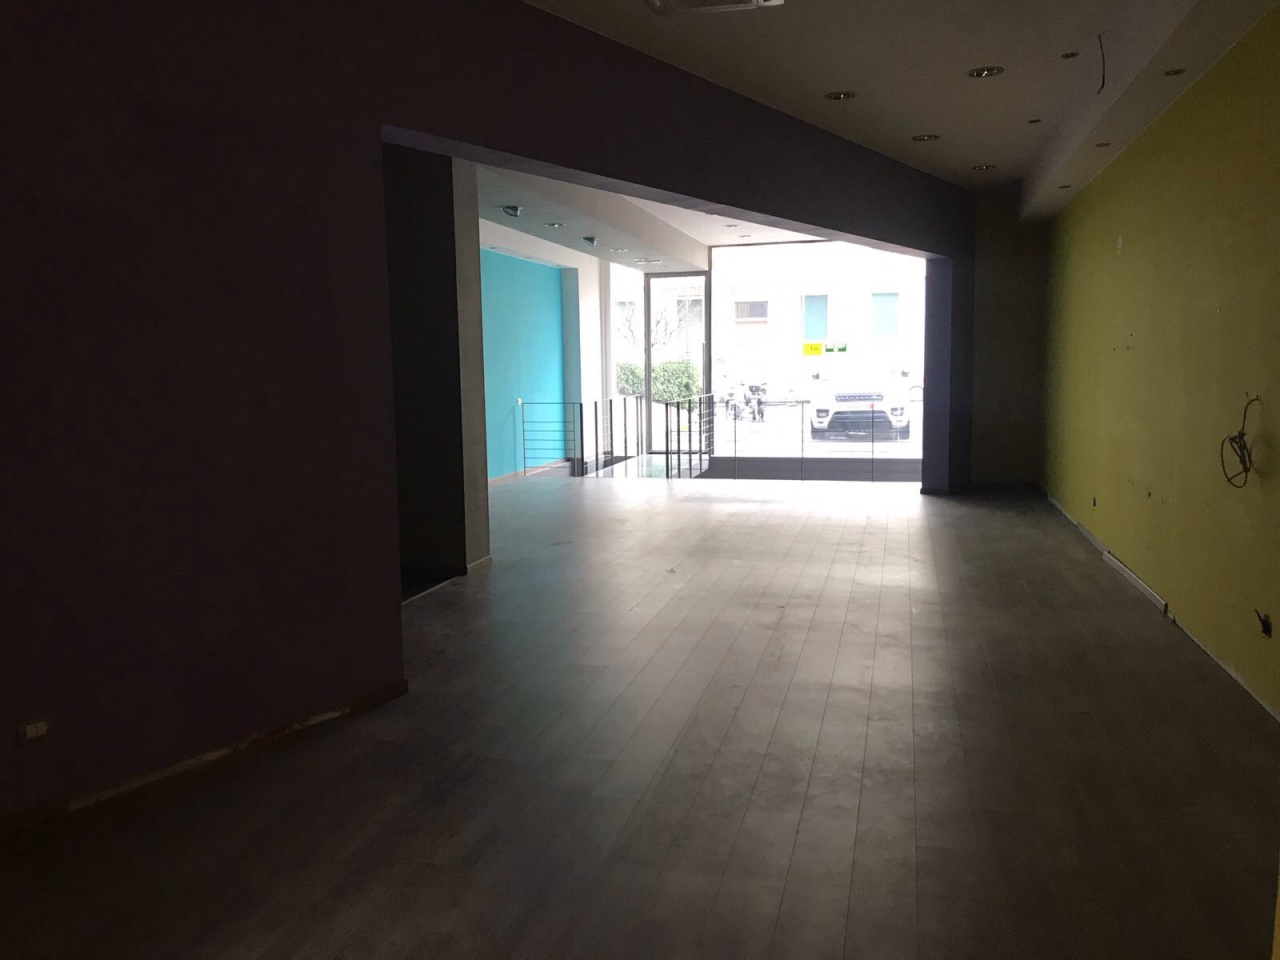 Locale Commerciale FIRENZE F161